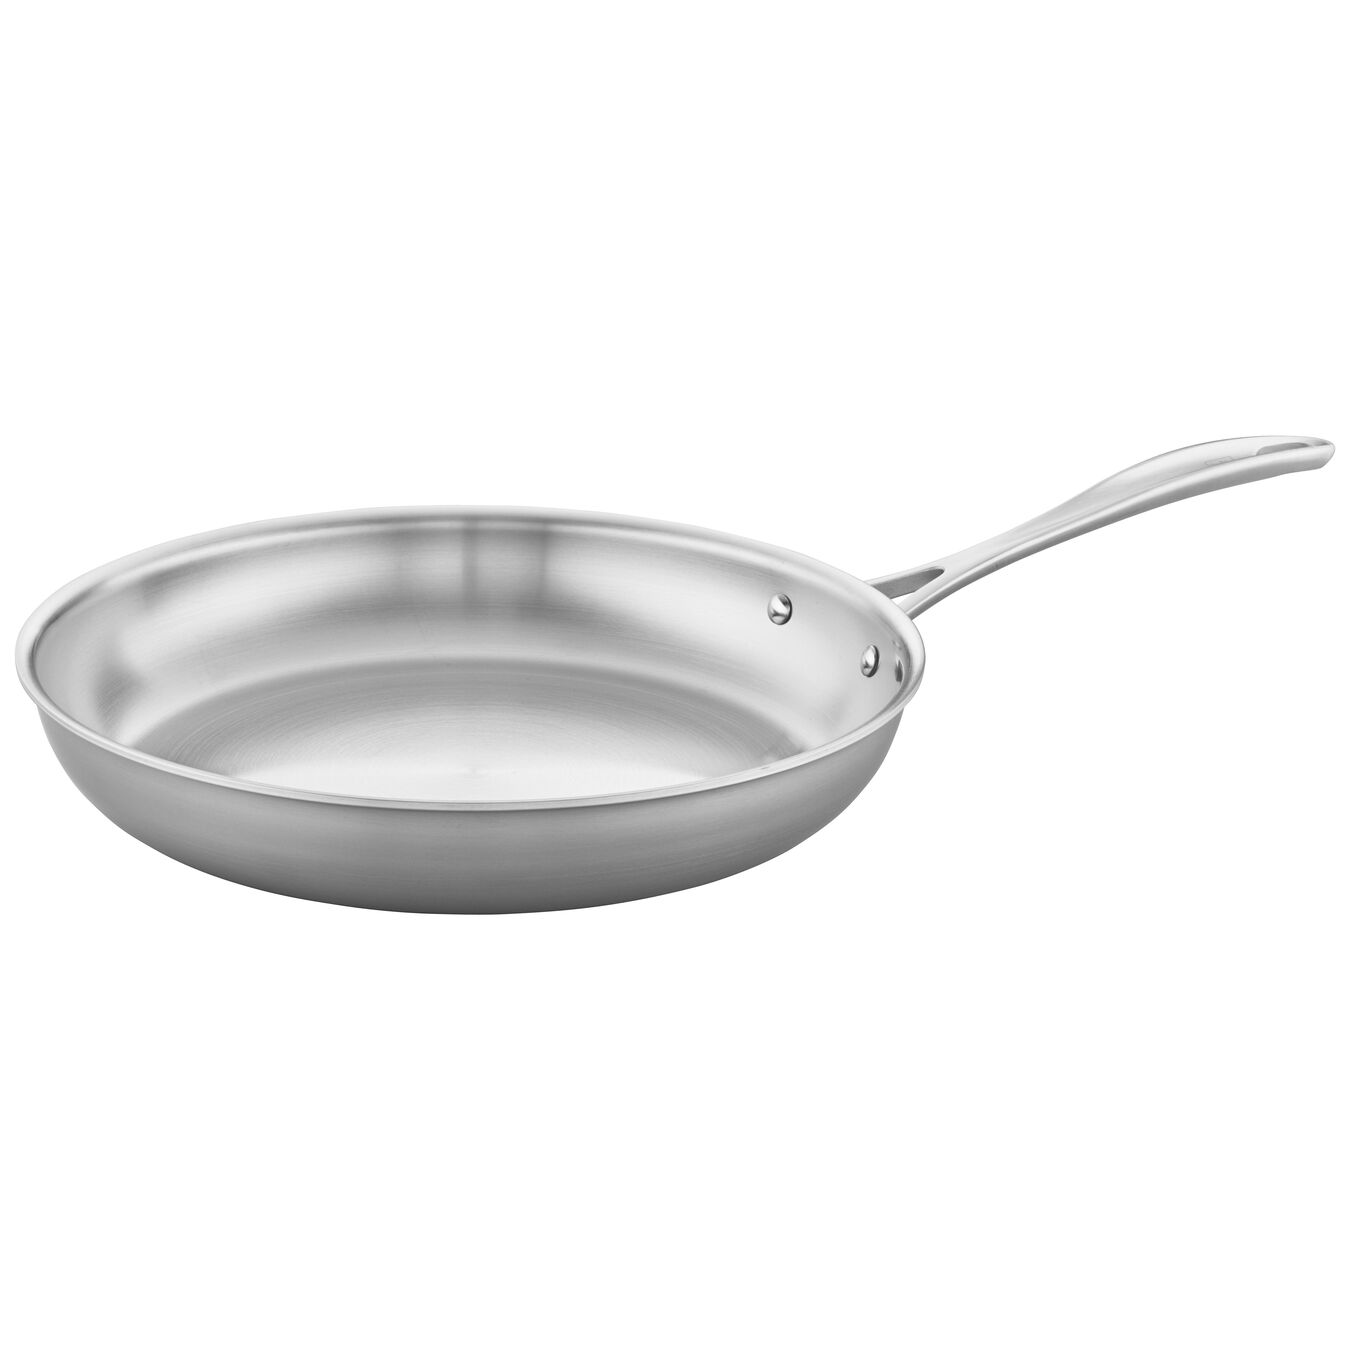 3-ply 12-inch Stainless Steel Fry Pan,,large 1